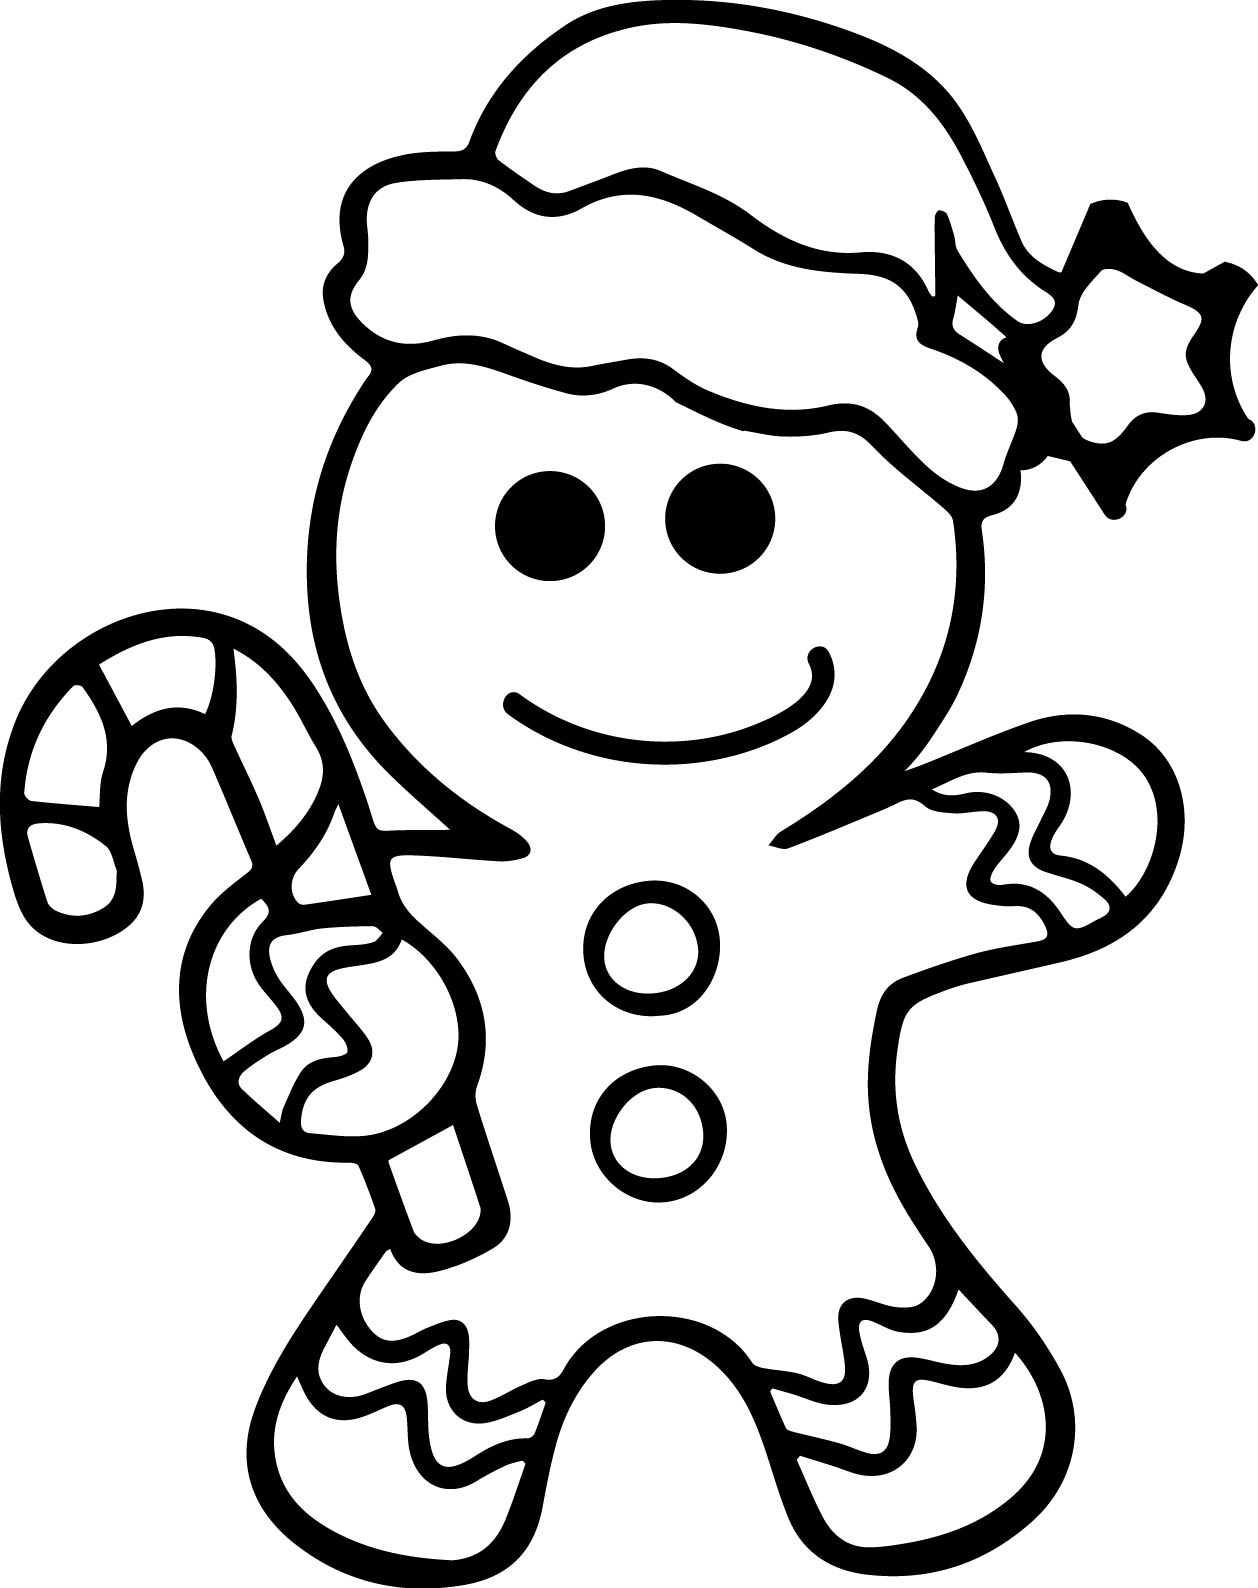 1258x1588 Impressive Gingerbread Man Coloring Pages Printable To Amusing